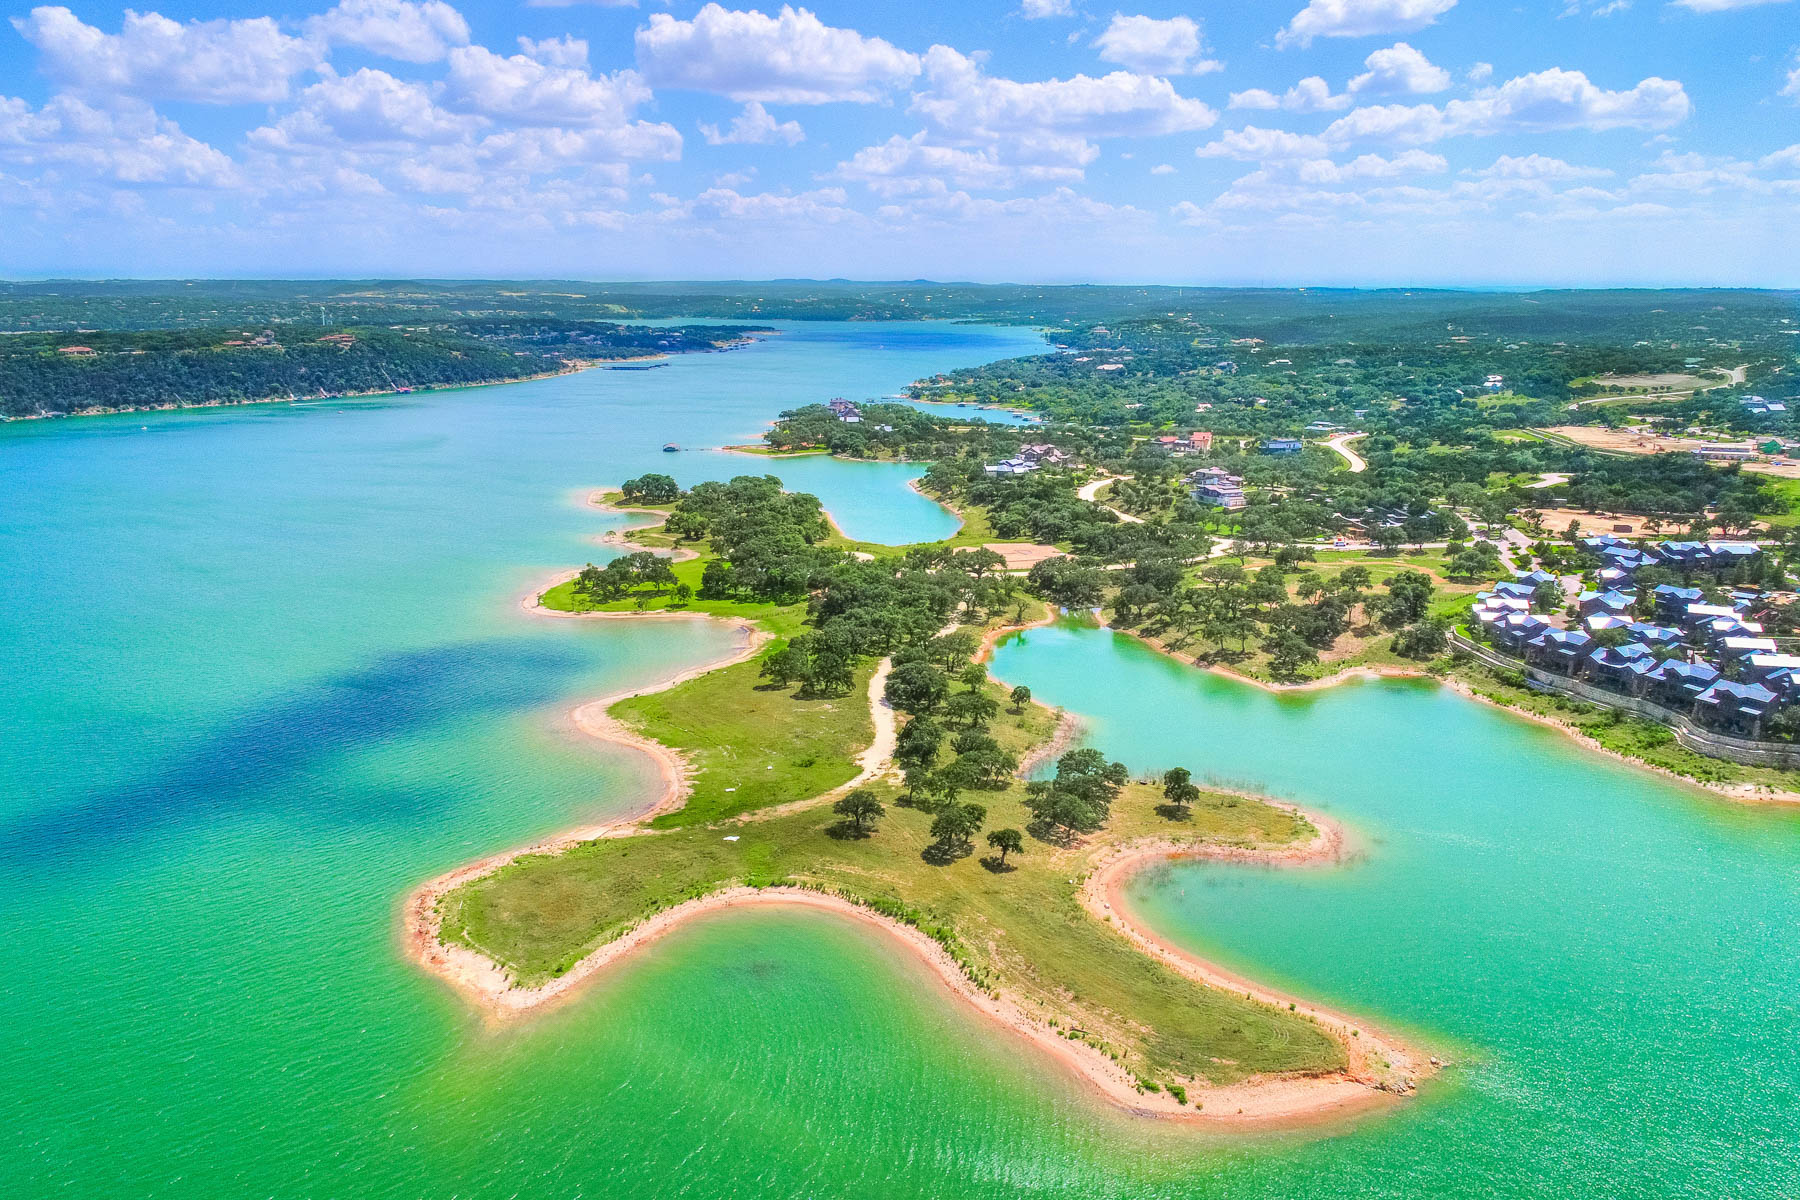 Land for Sale at The Reserve on Lake Travis: 12.24 Waterfront Acres 2200 Cypress Club Pointe Spicewood, Texas 78669 United States